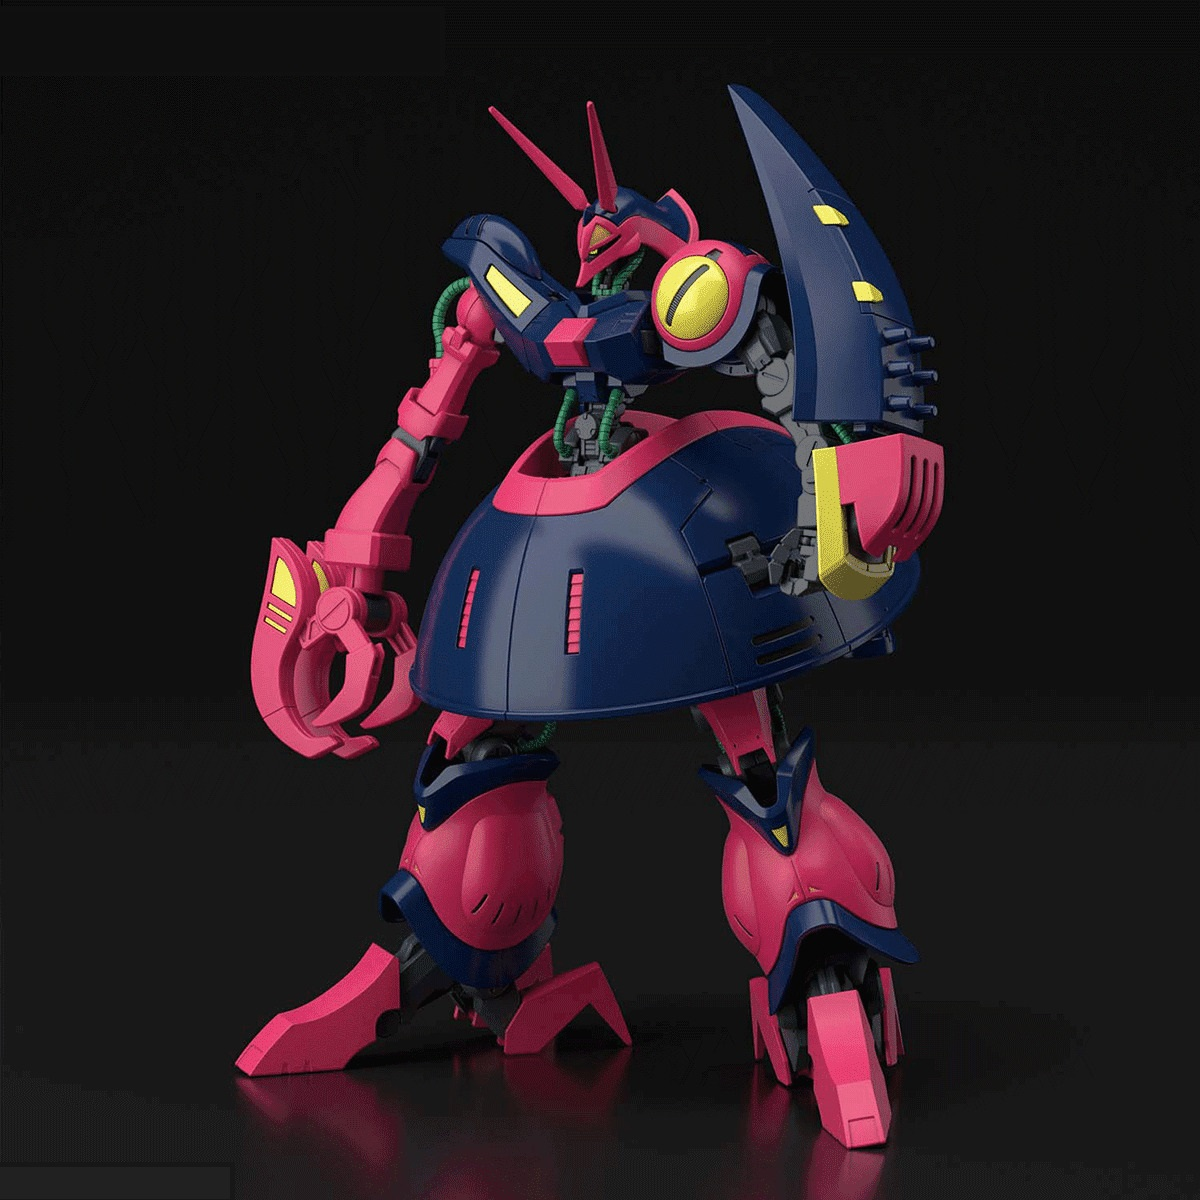 NRX-055 Baund Doc Zeta Gundam #236 HGUC 1144 Scale Model Kit (1)